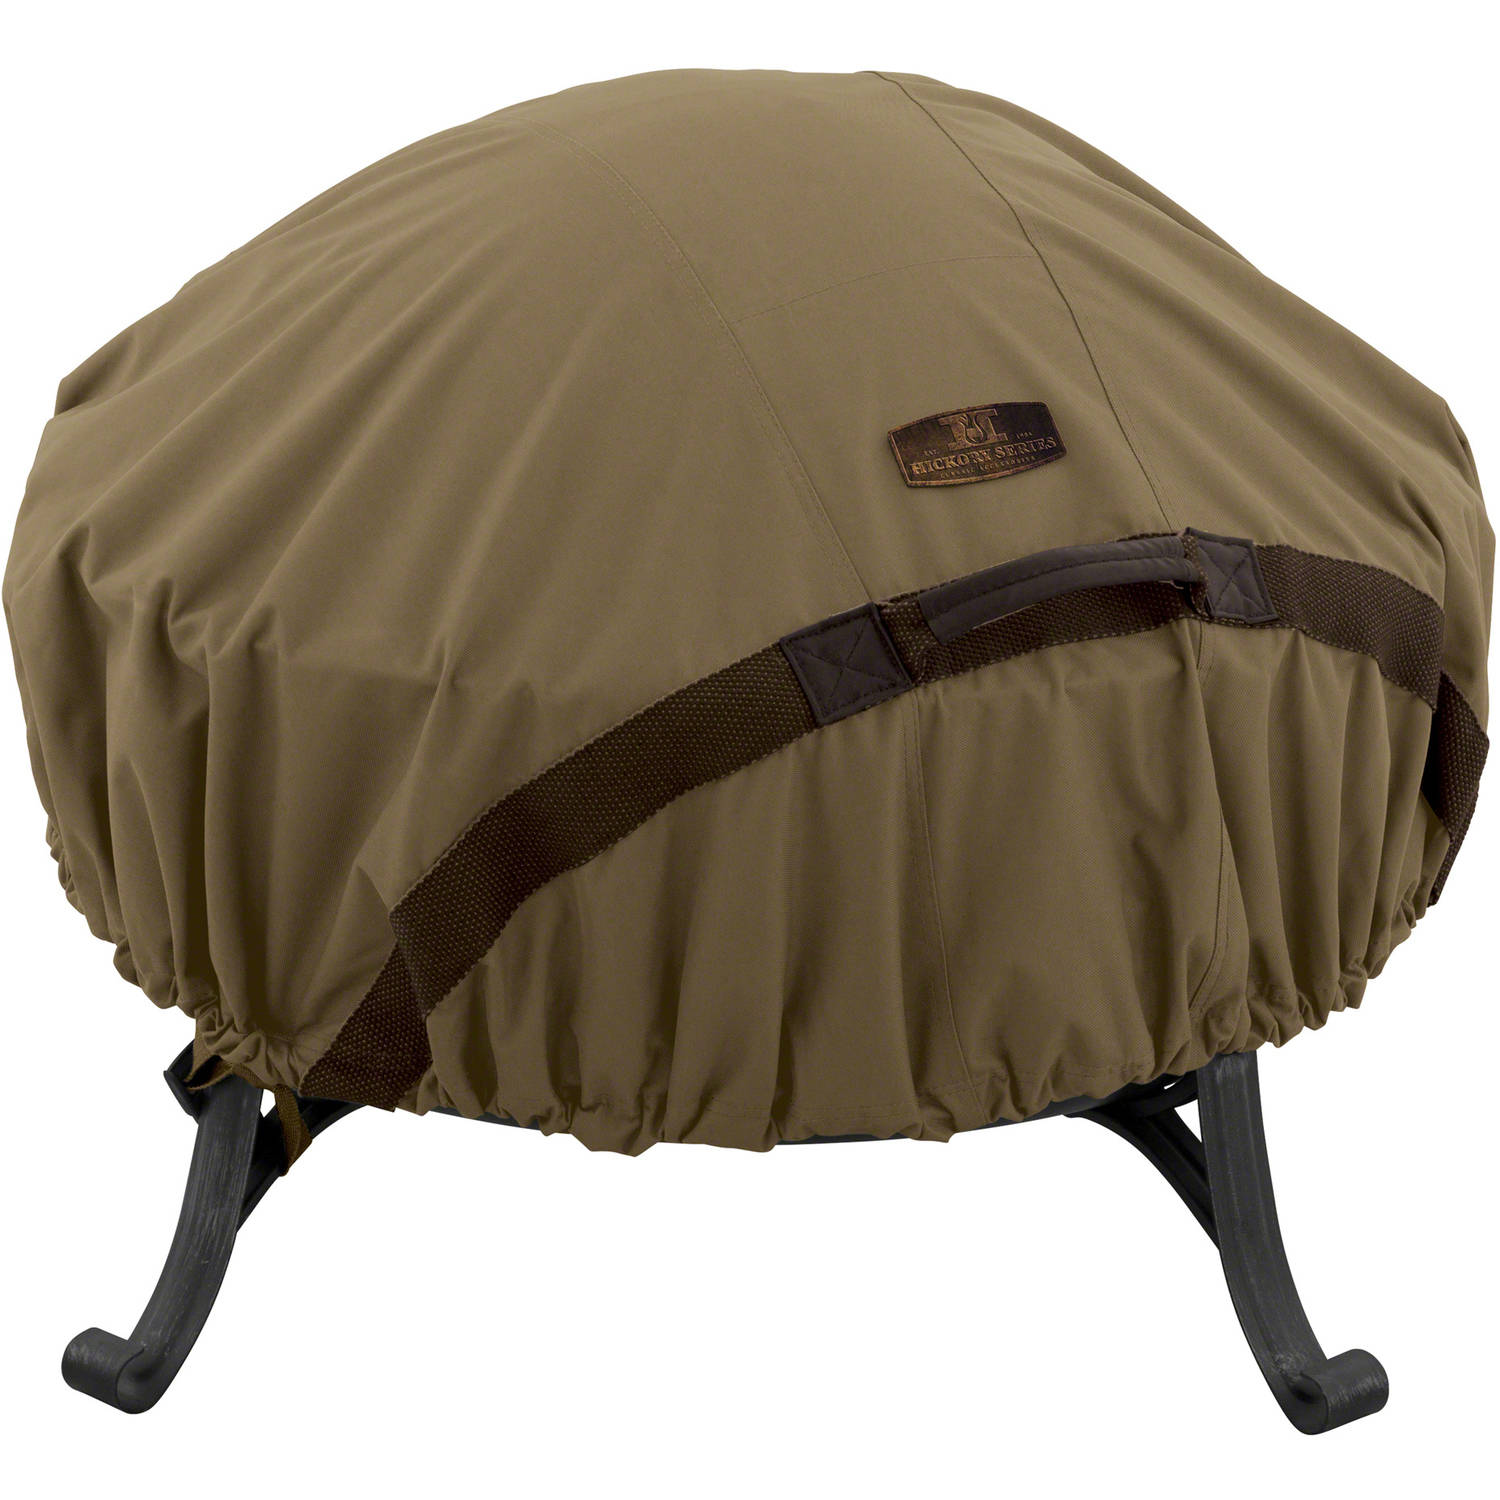 Classic Accessories Hickory Fire Pit Patio Storage Cover, Tan